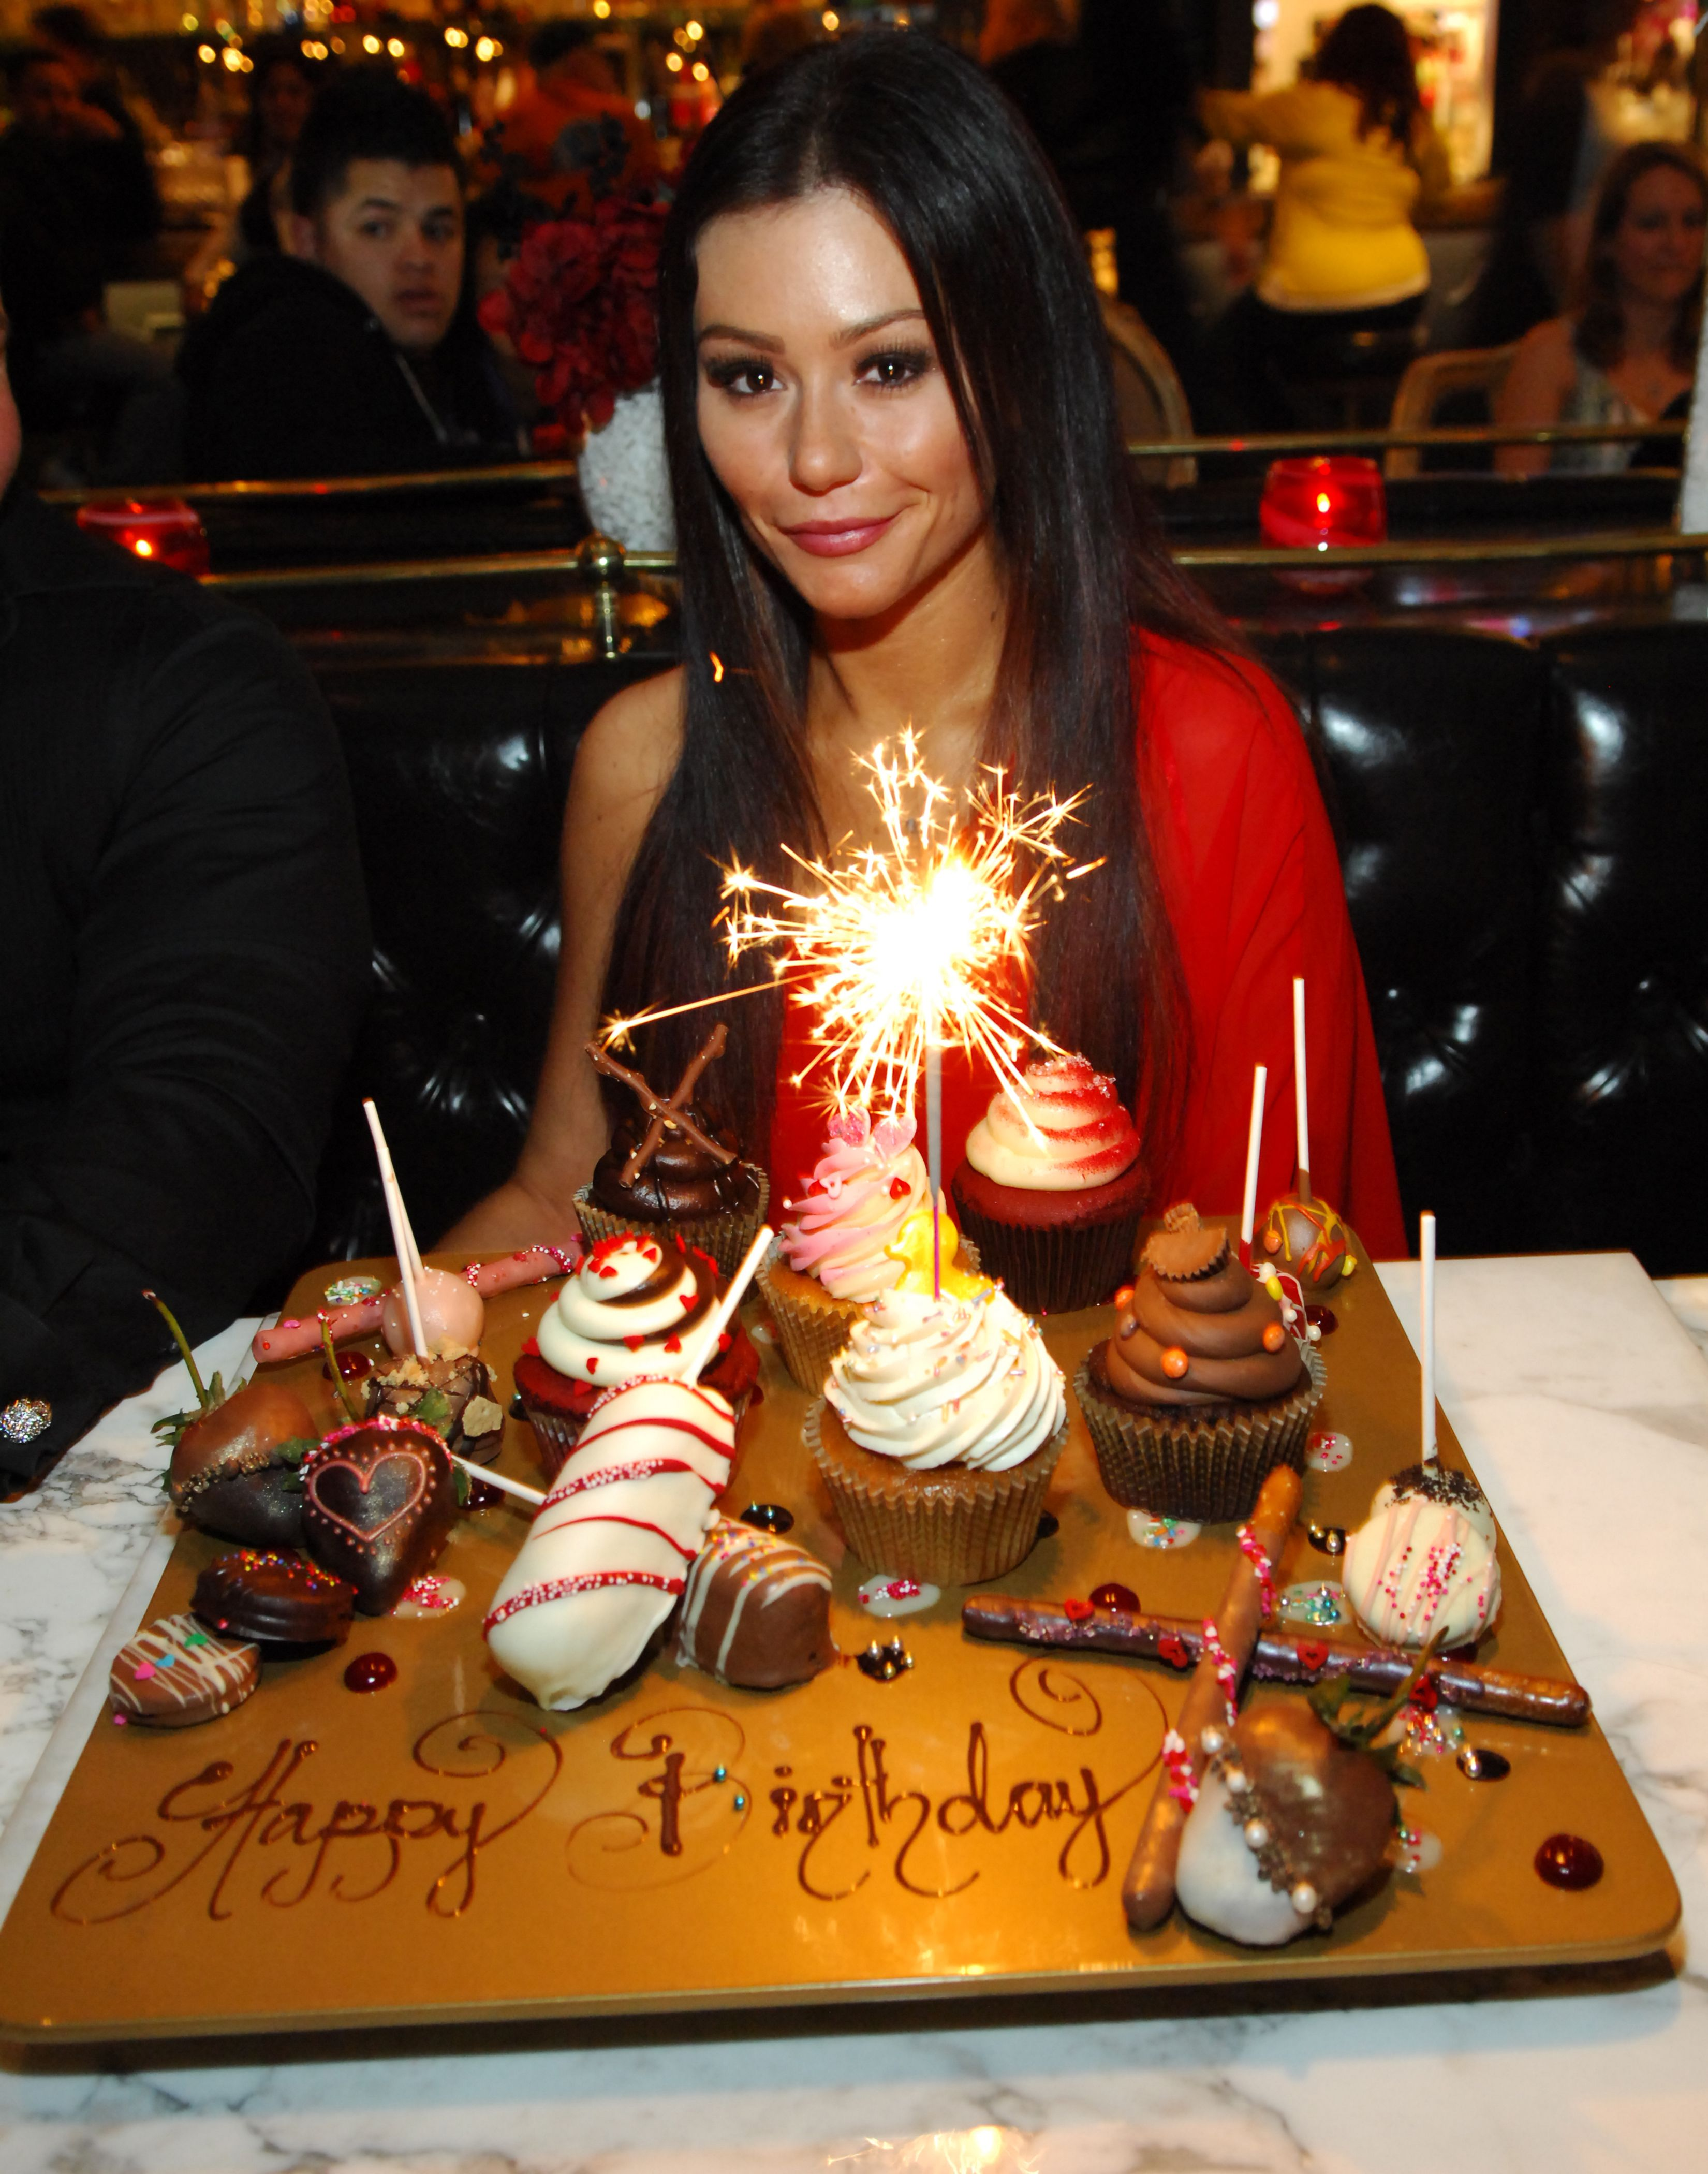 Christmas Dinner In Las Vegas 2019 Sugar Factory, Las Vegas. J WOWW having a sweet time at dinner